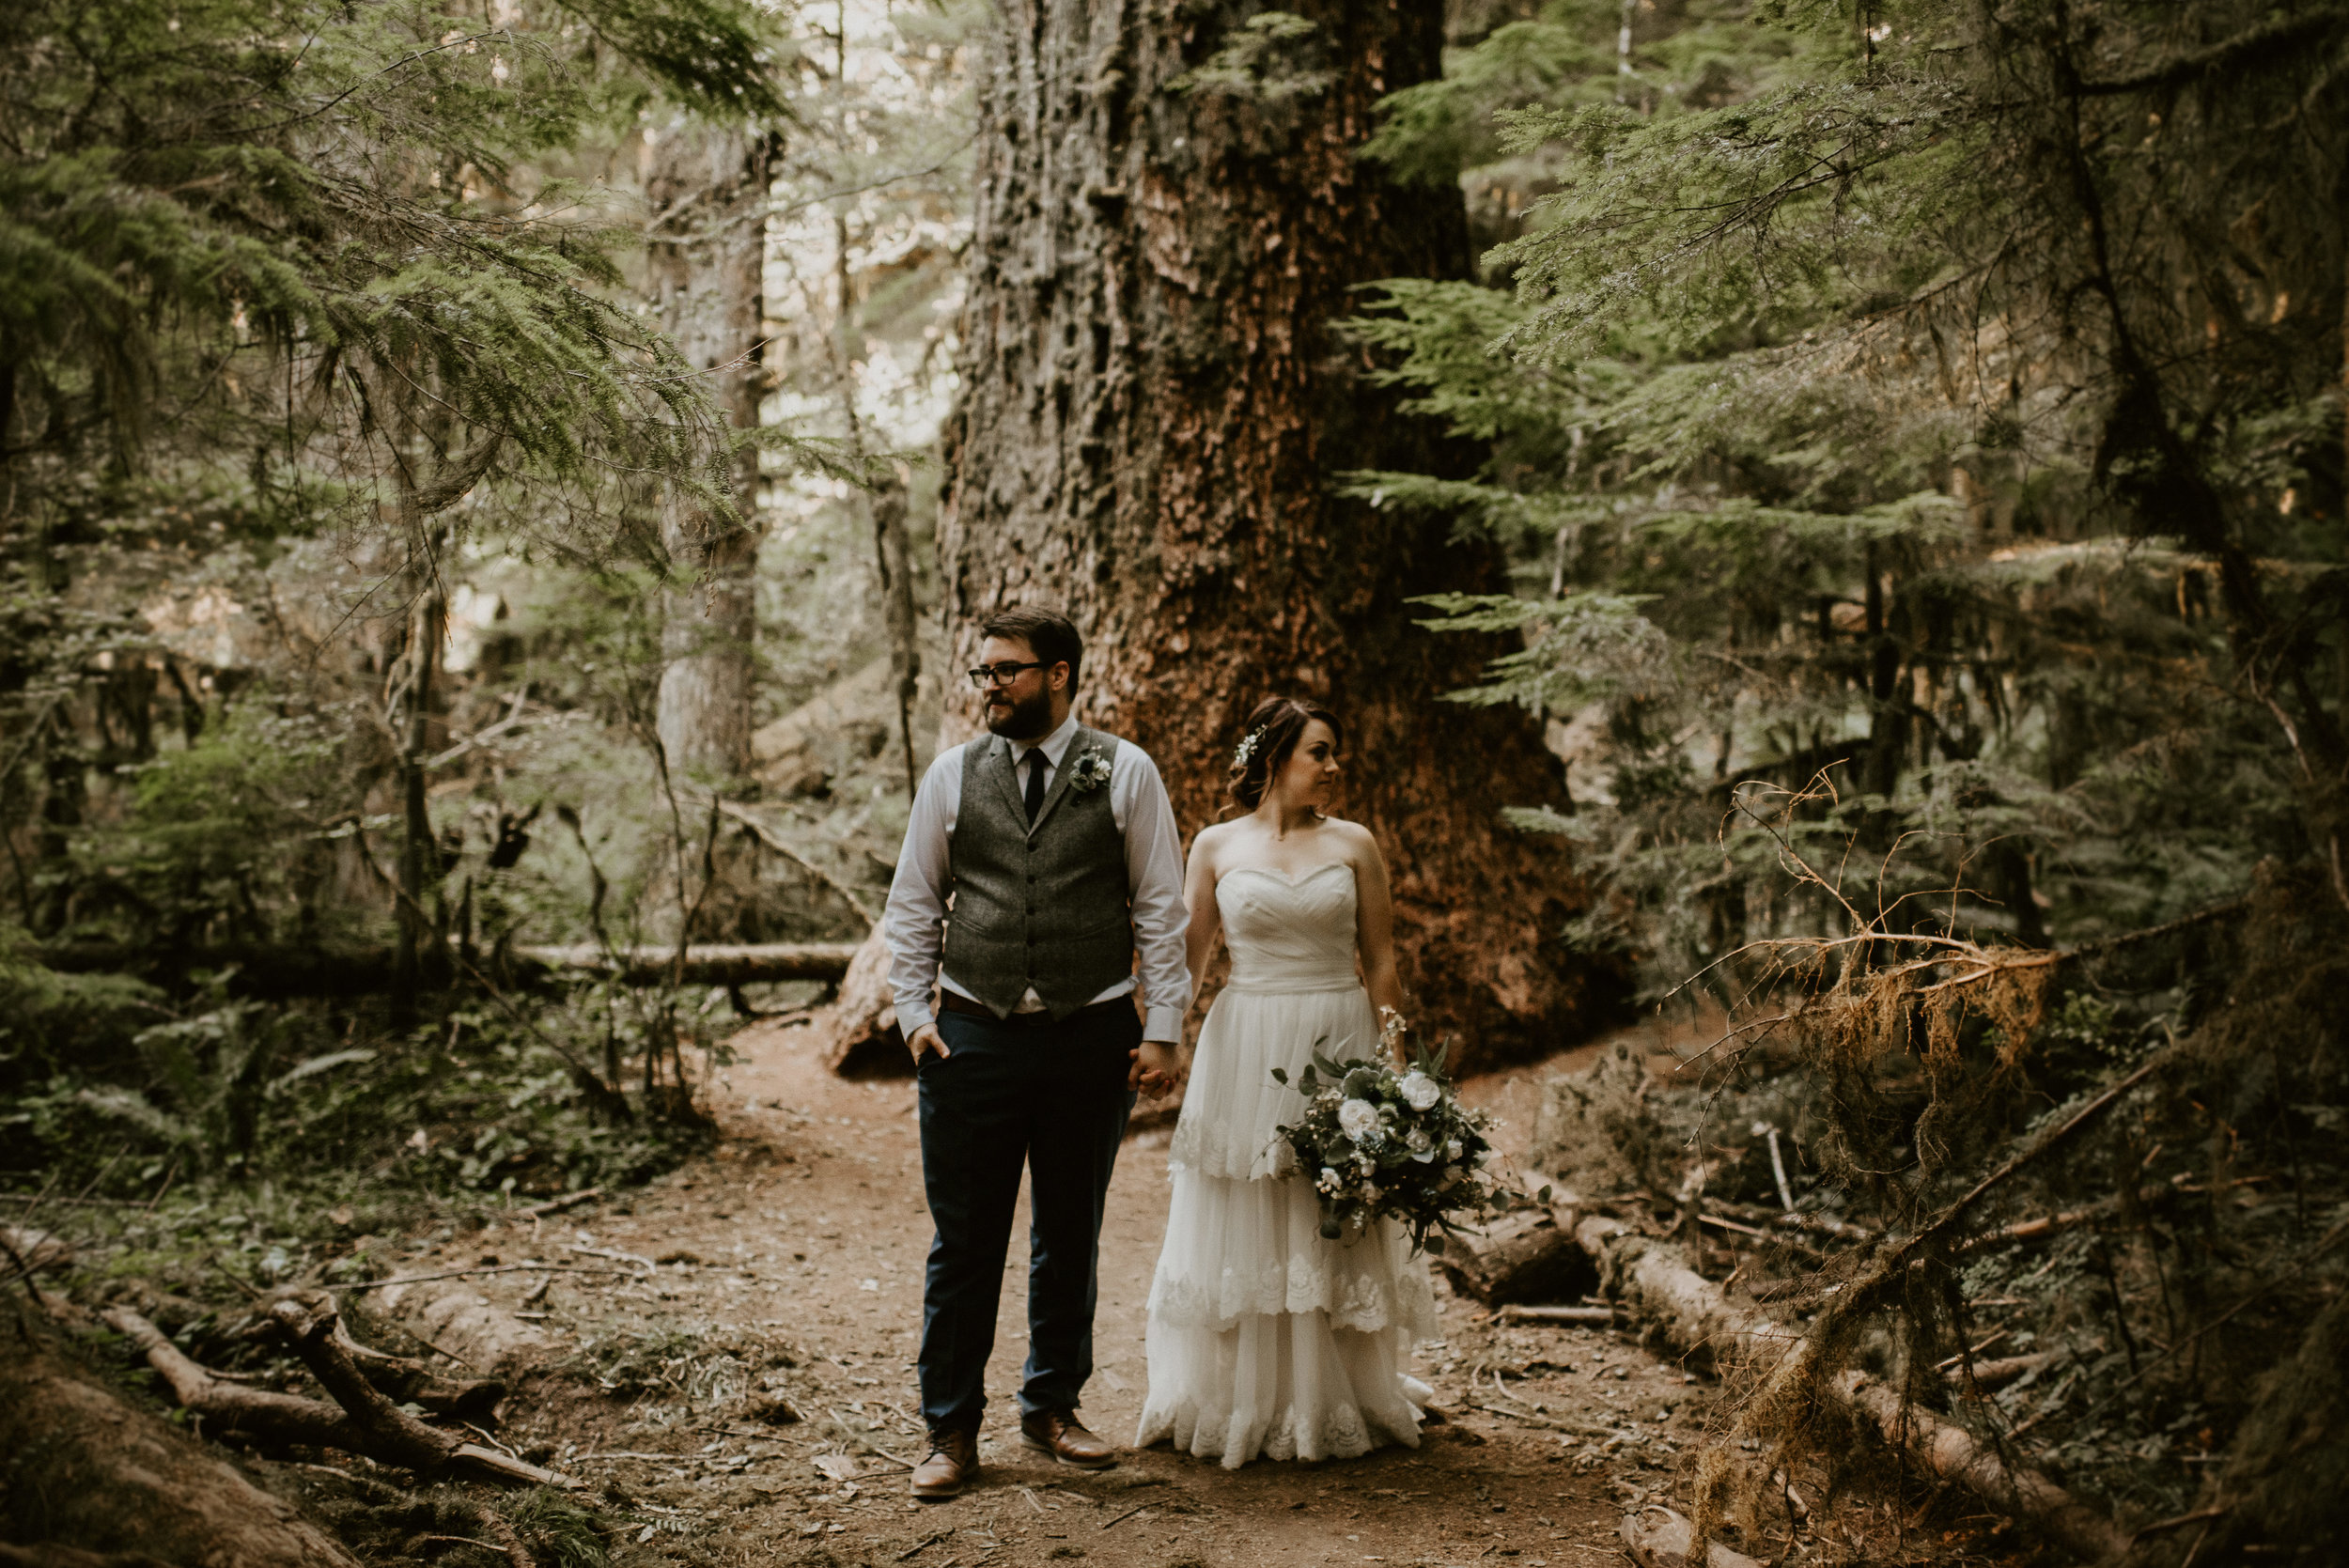 Chelsie + Matt's Marymere Falls Elopement at Olympic National Park by Kamra Fuller Photography